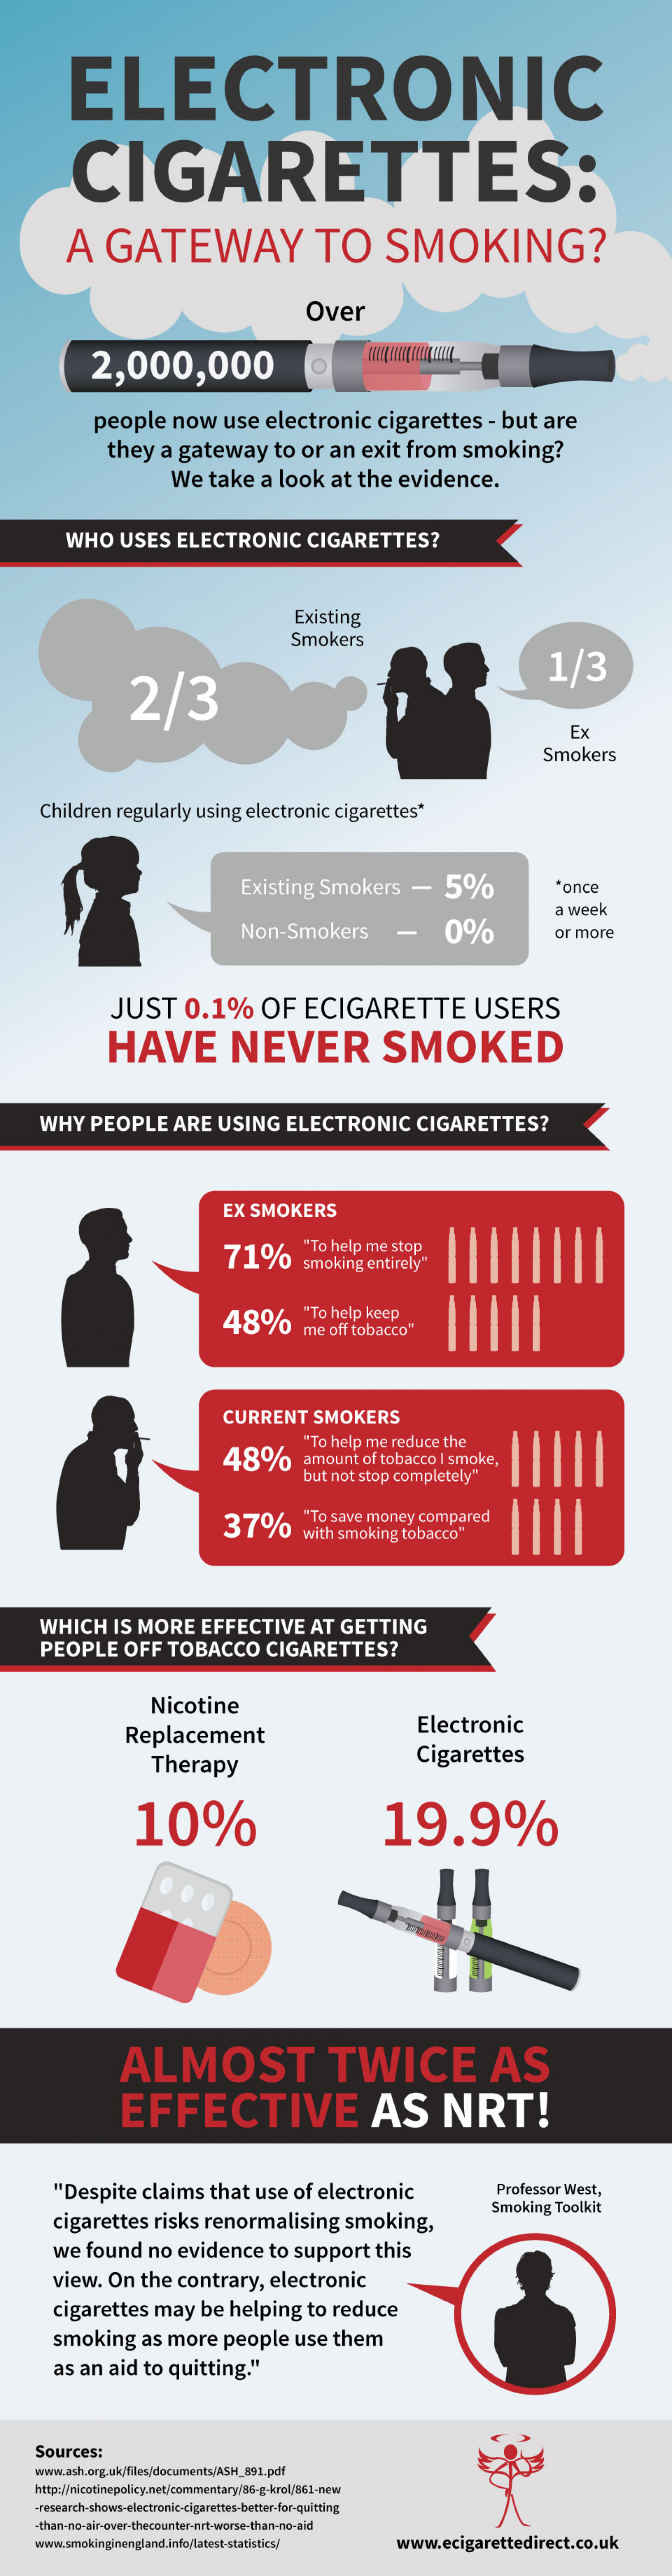 Are Electronic Cigarettes a Gateway to Smoking? Infographic